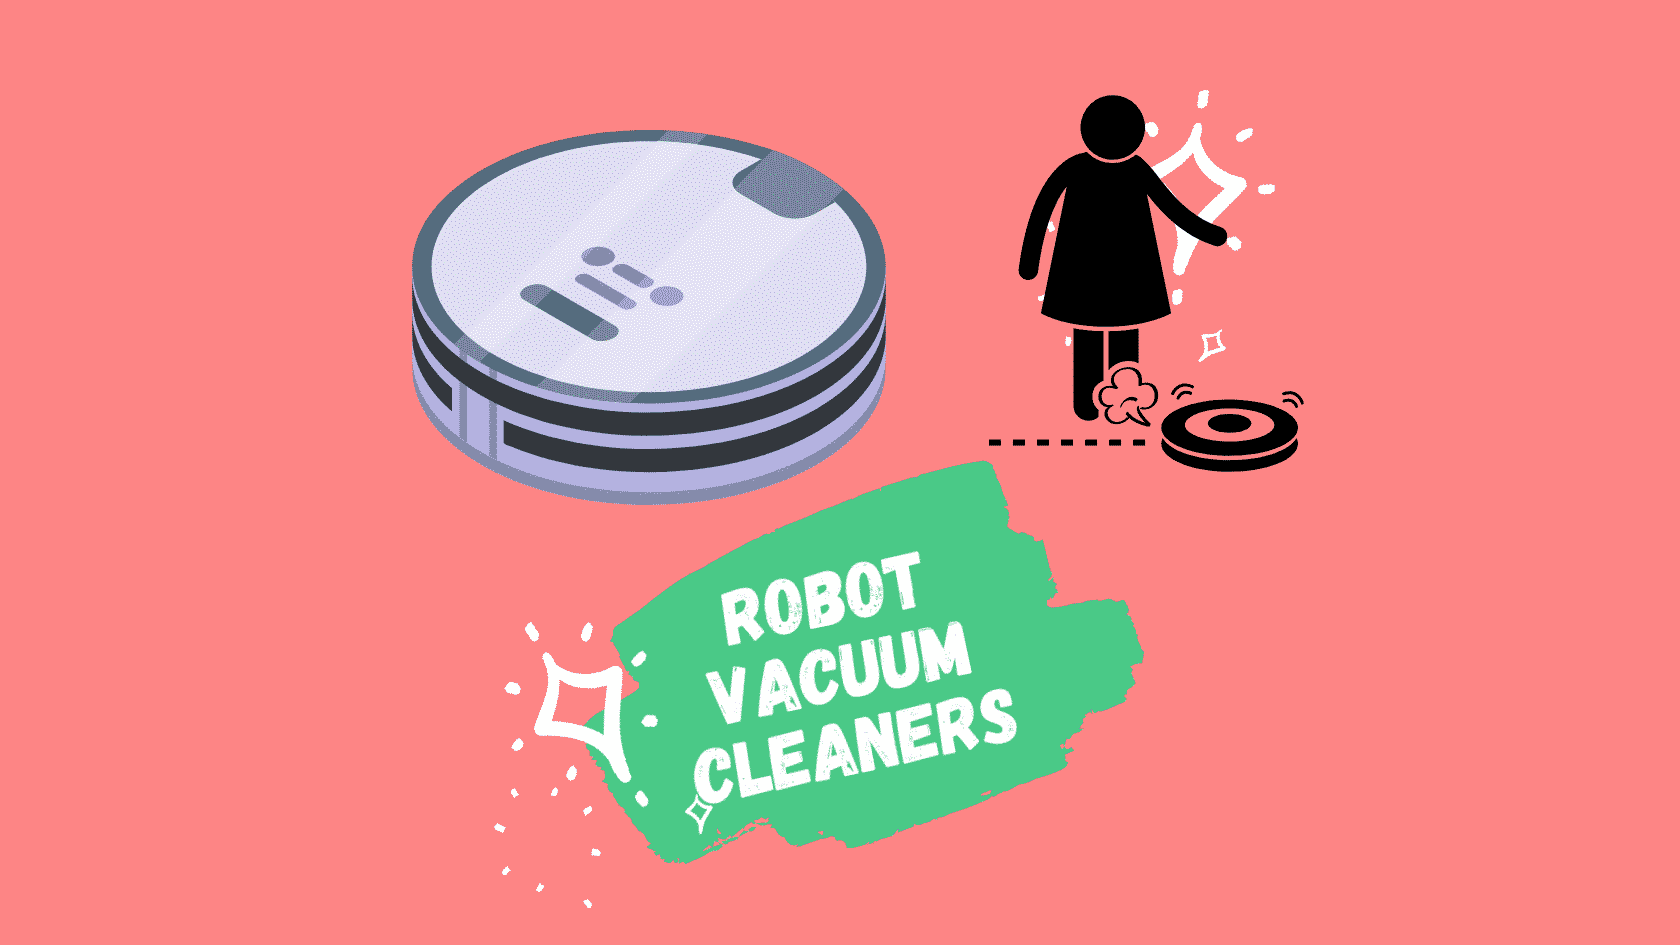 Best Robot Vacuums for Carpet Cleaning